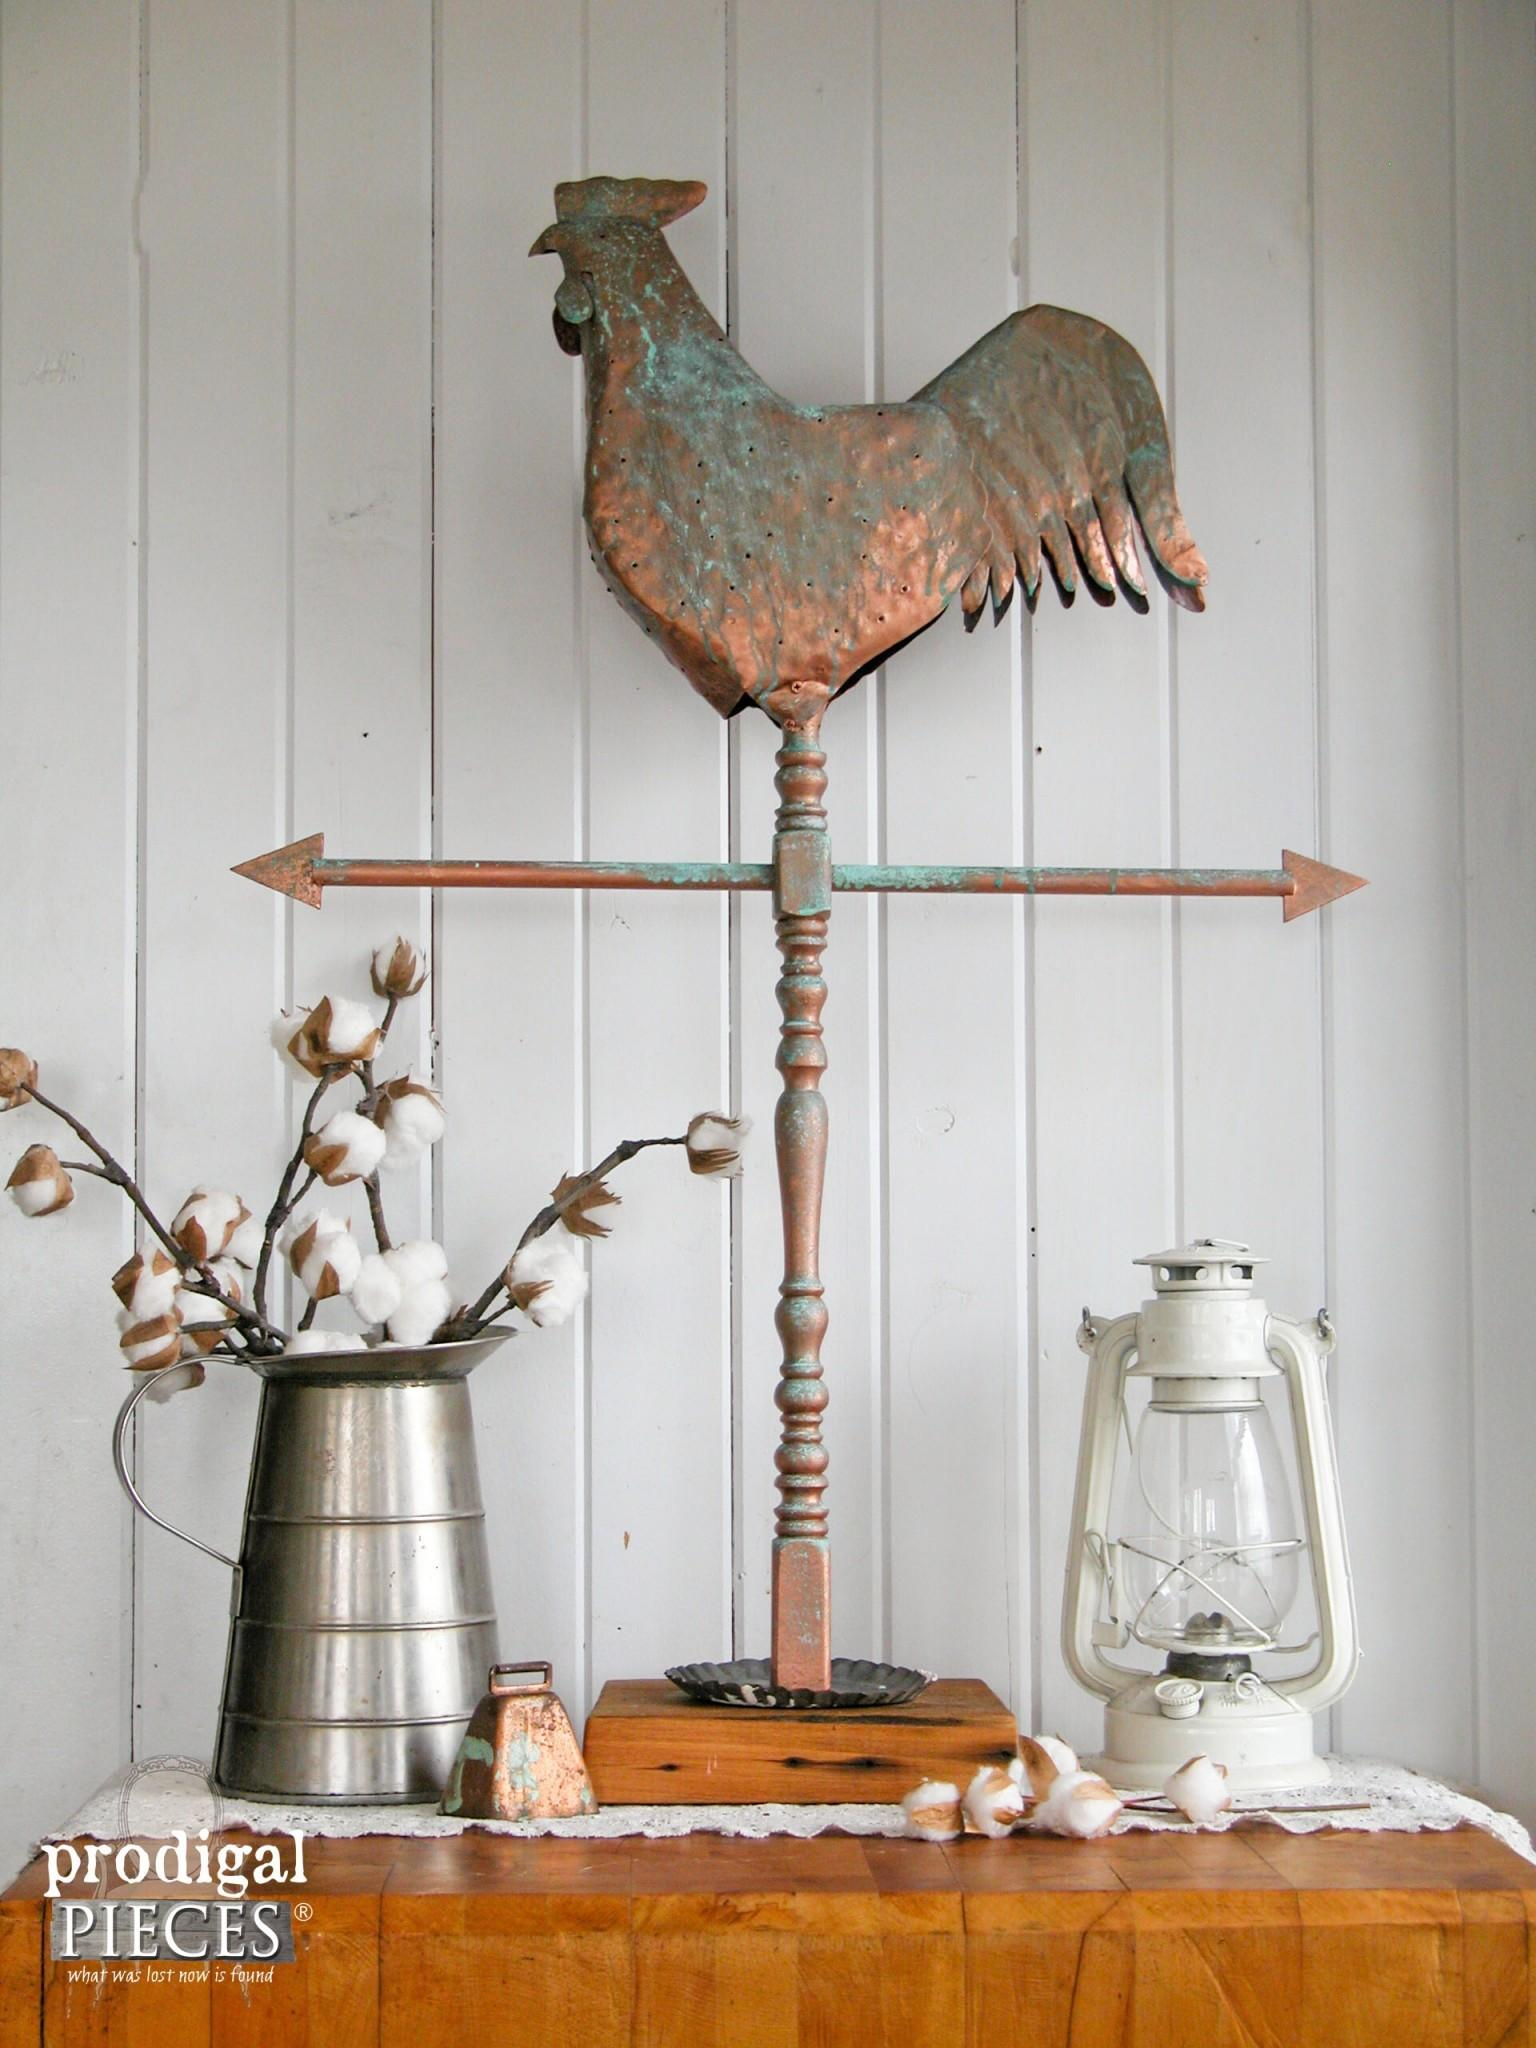 Repurposed Farmhouse Metal Art Prodigal Pieces